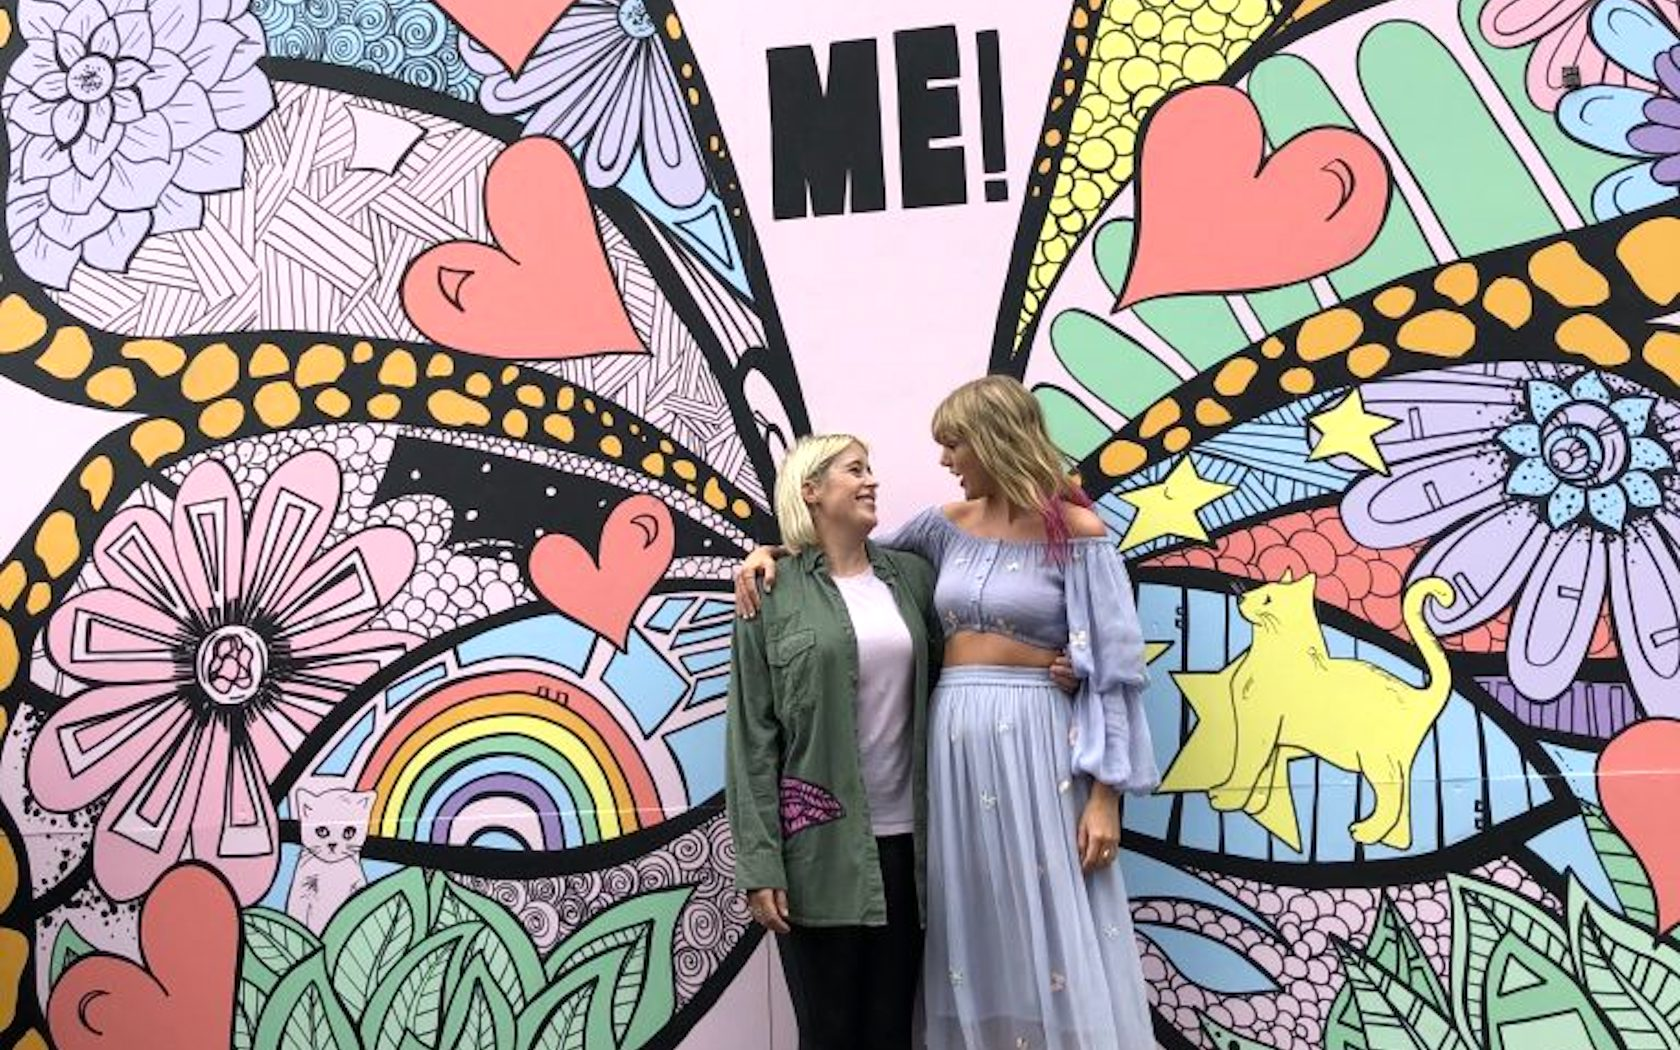 Kelsey Montague Painted Taylor Swift S Me Wall And Many Other Murals